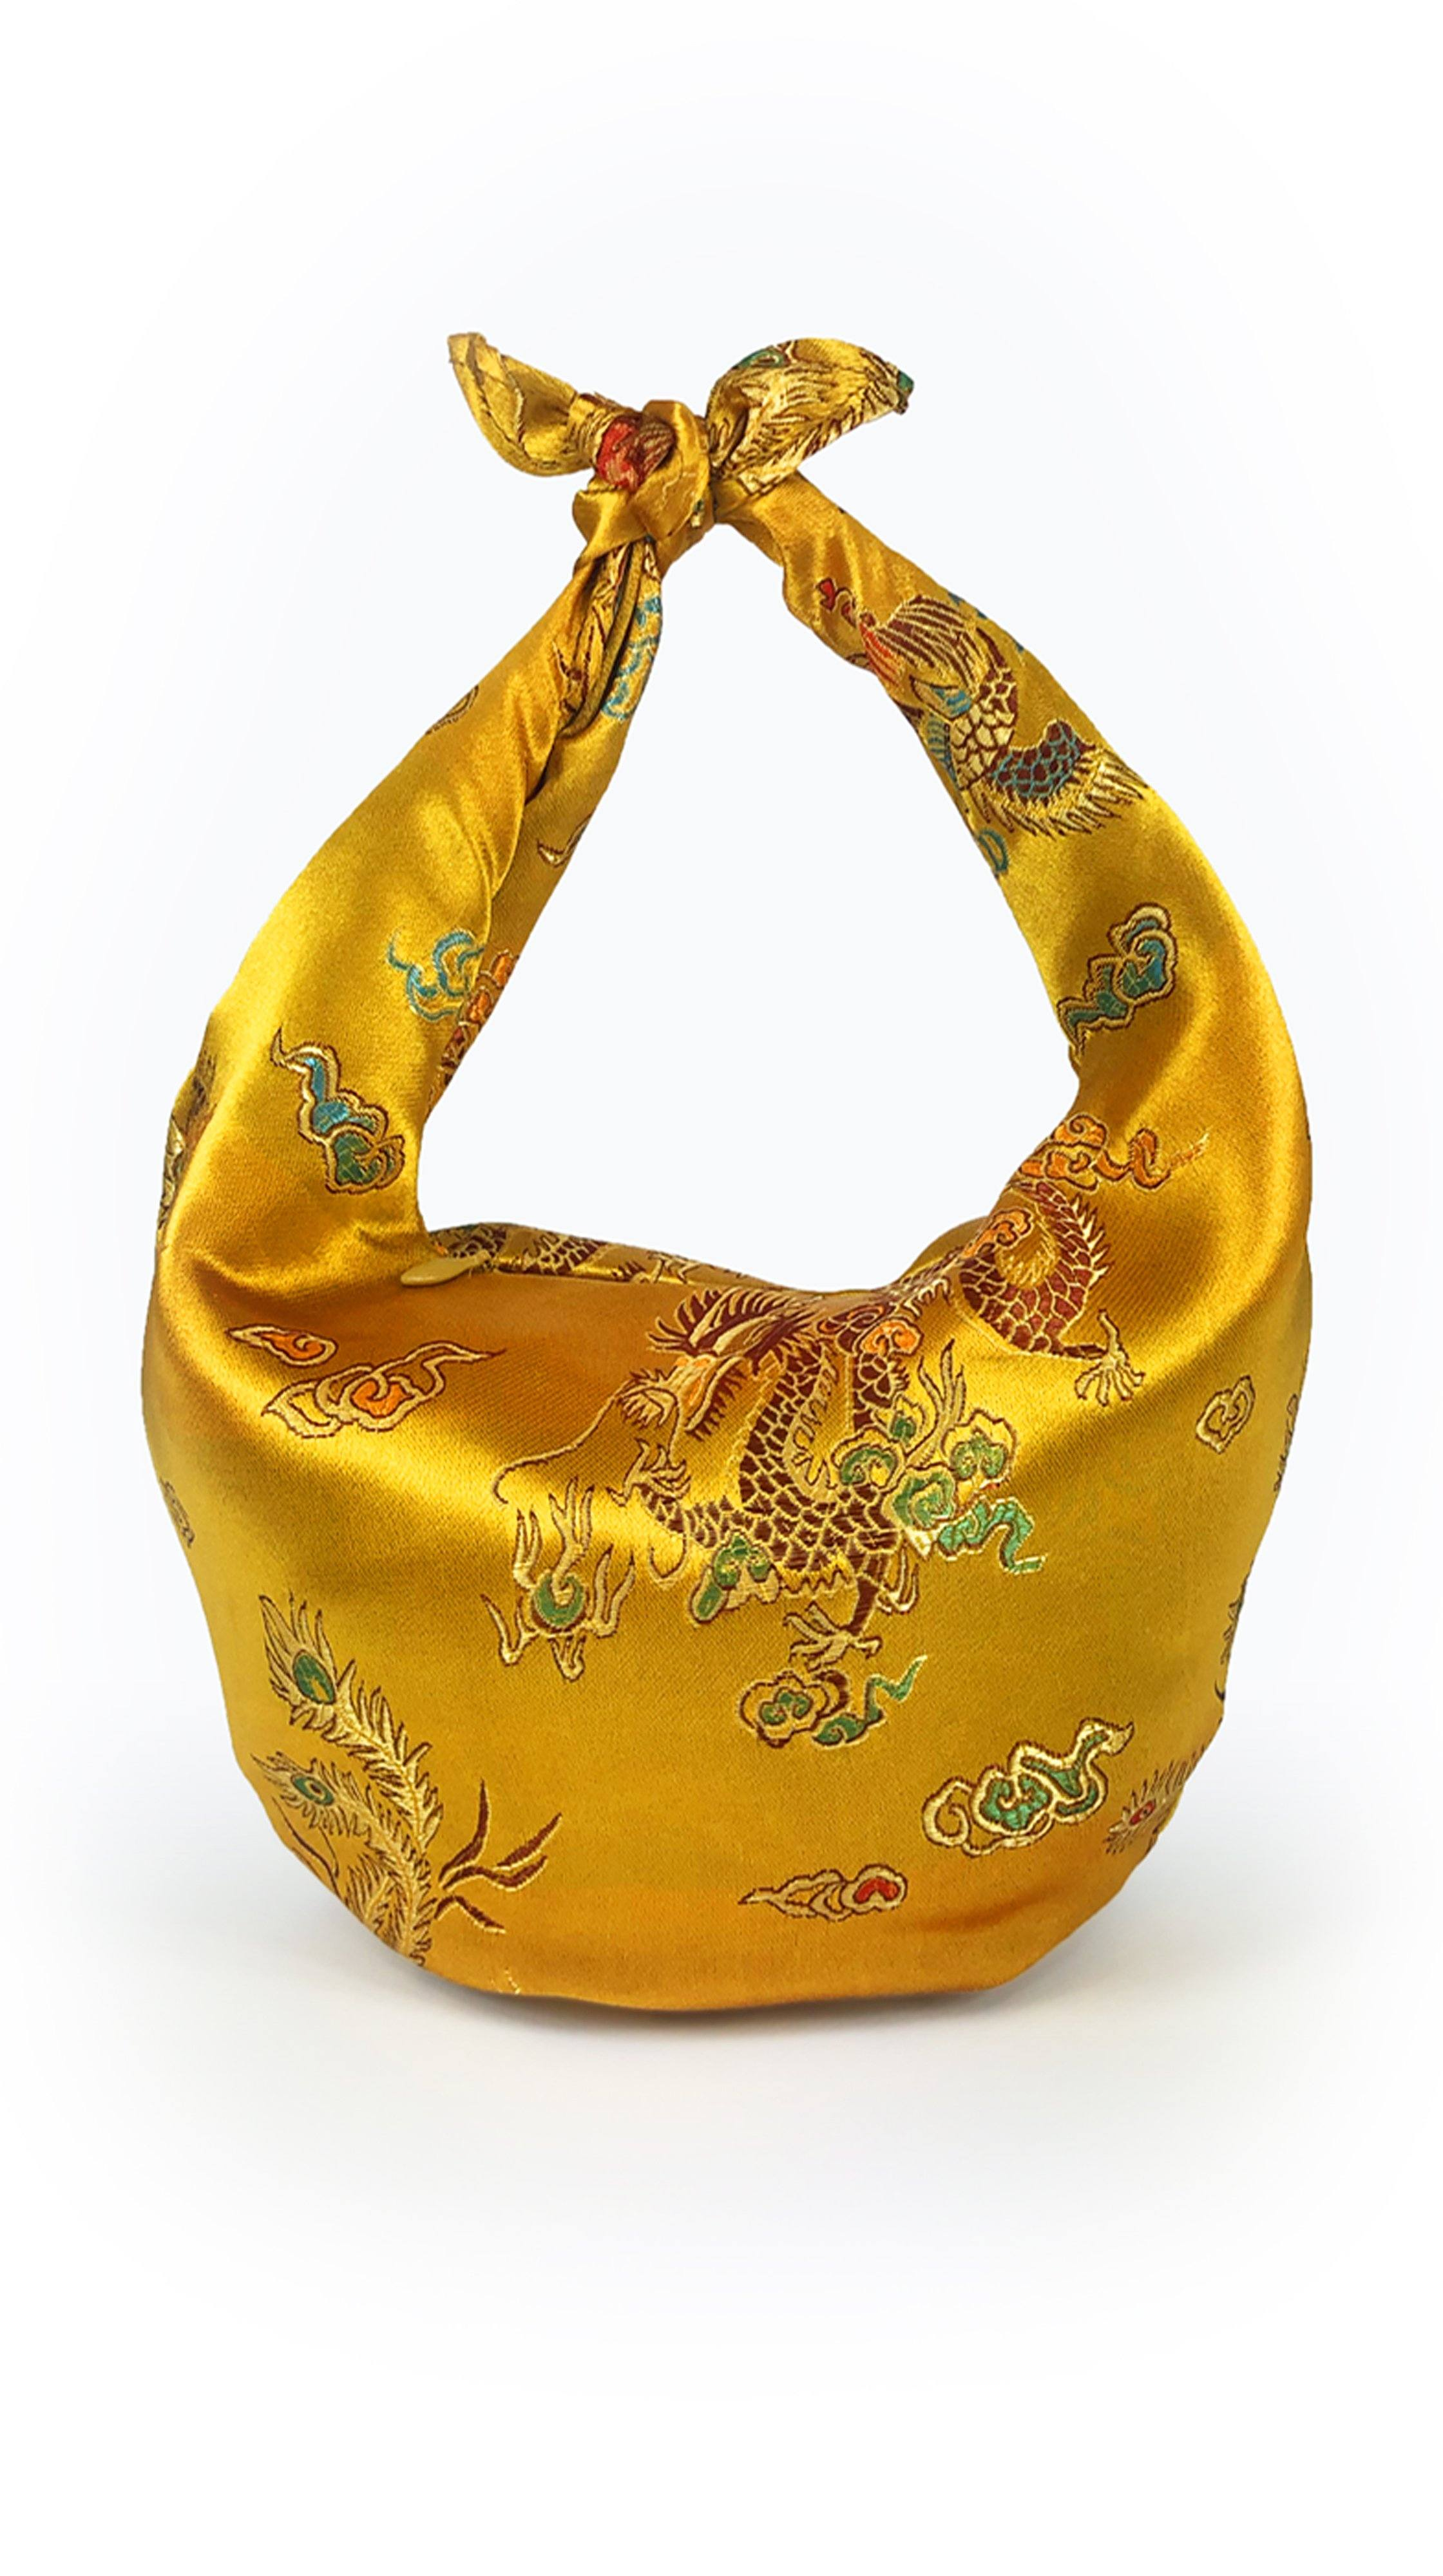 ITSO Easy Mini Purse Tie Bag in Gold Chinese Jacquard by ITSO | Nineteenth Amendment